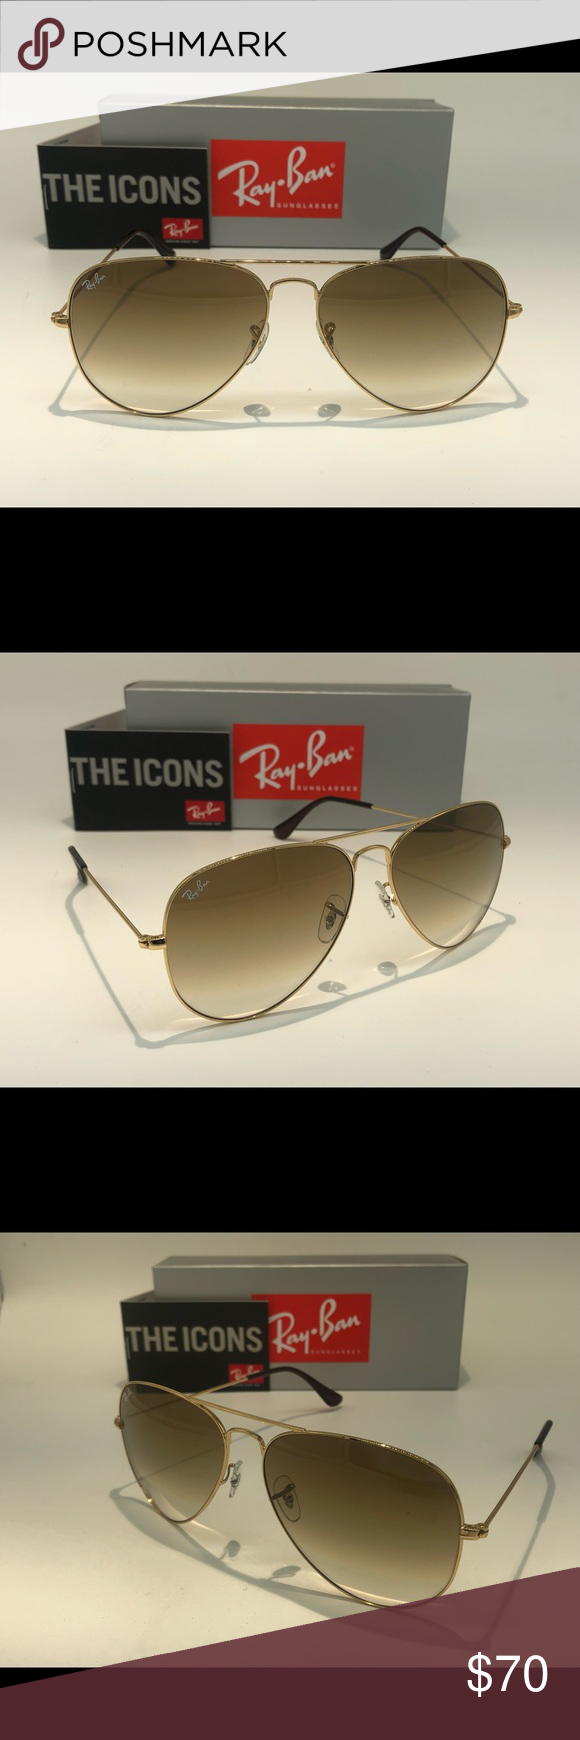 RayBan Aviator Series Frame Gold Lens Gradient Brown